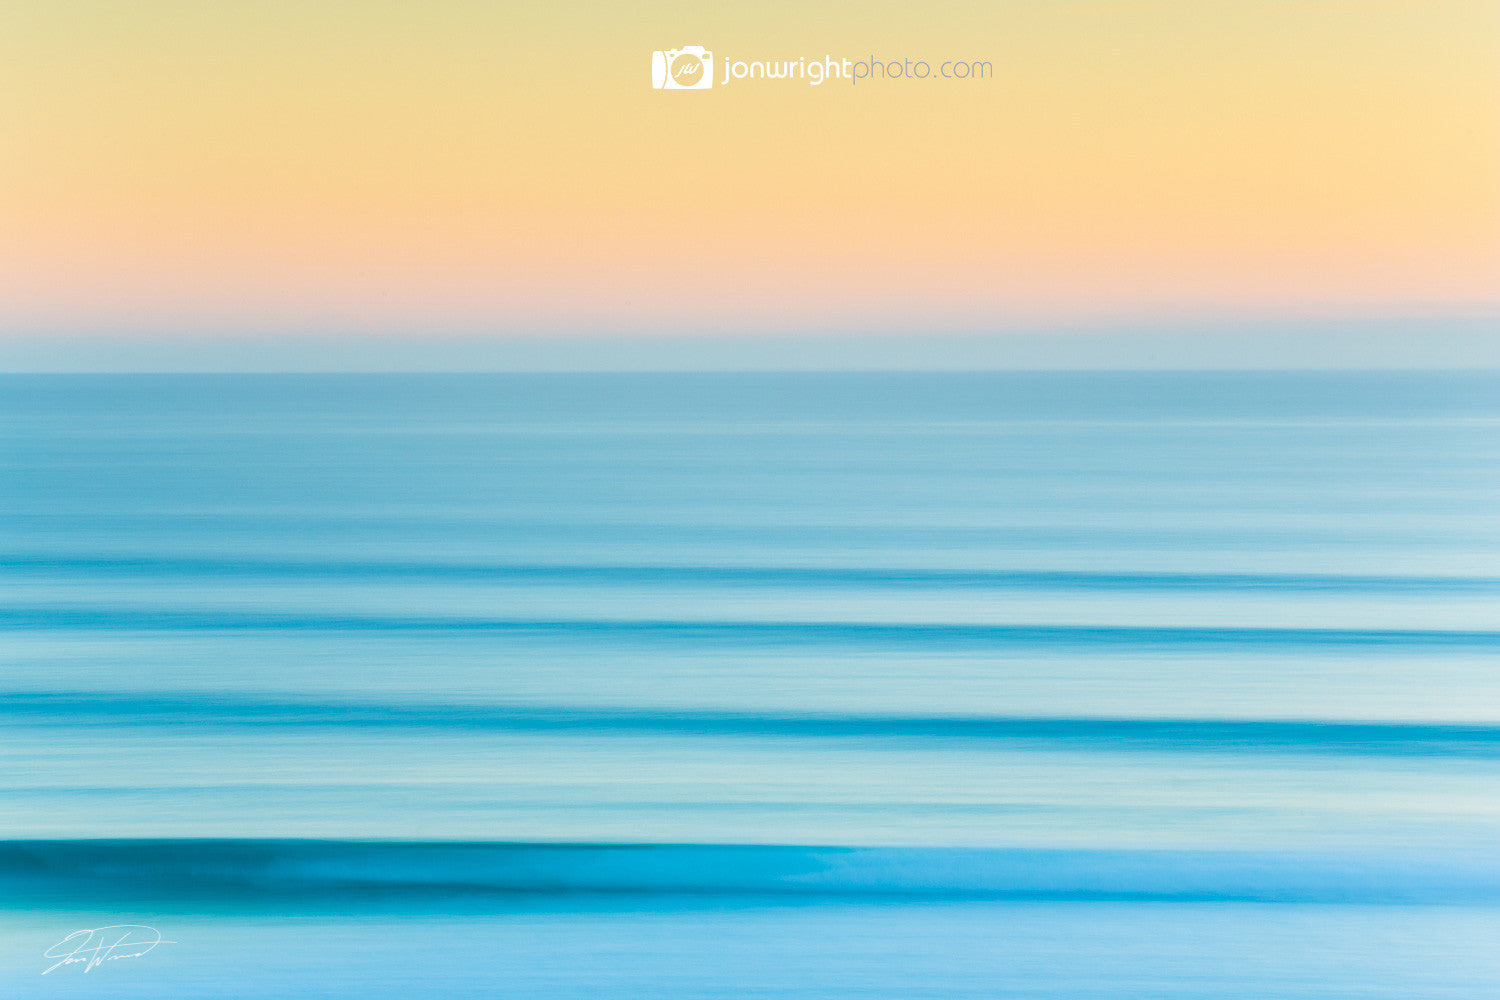 Blurred lines - Kirra beach, QLD Australia